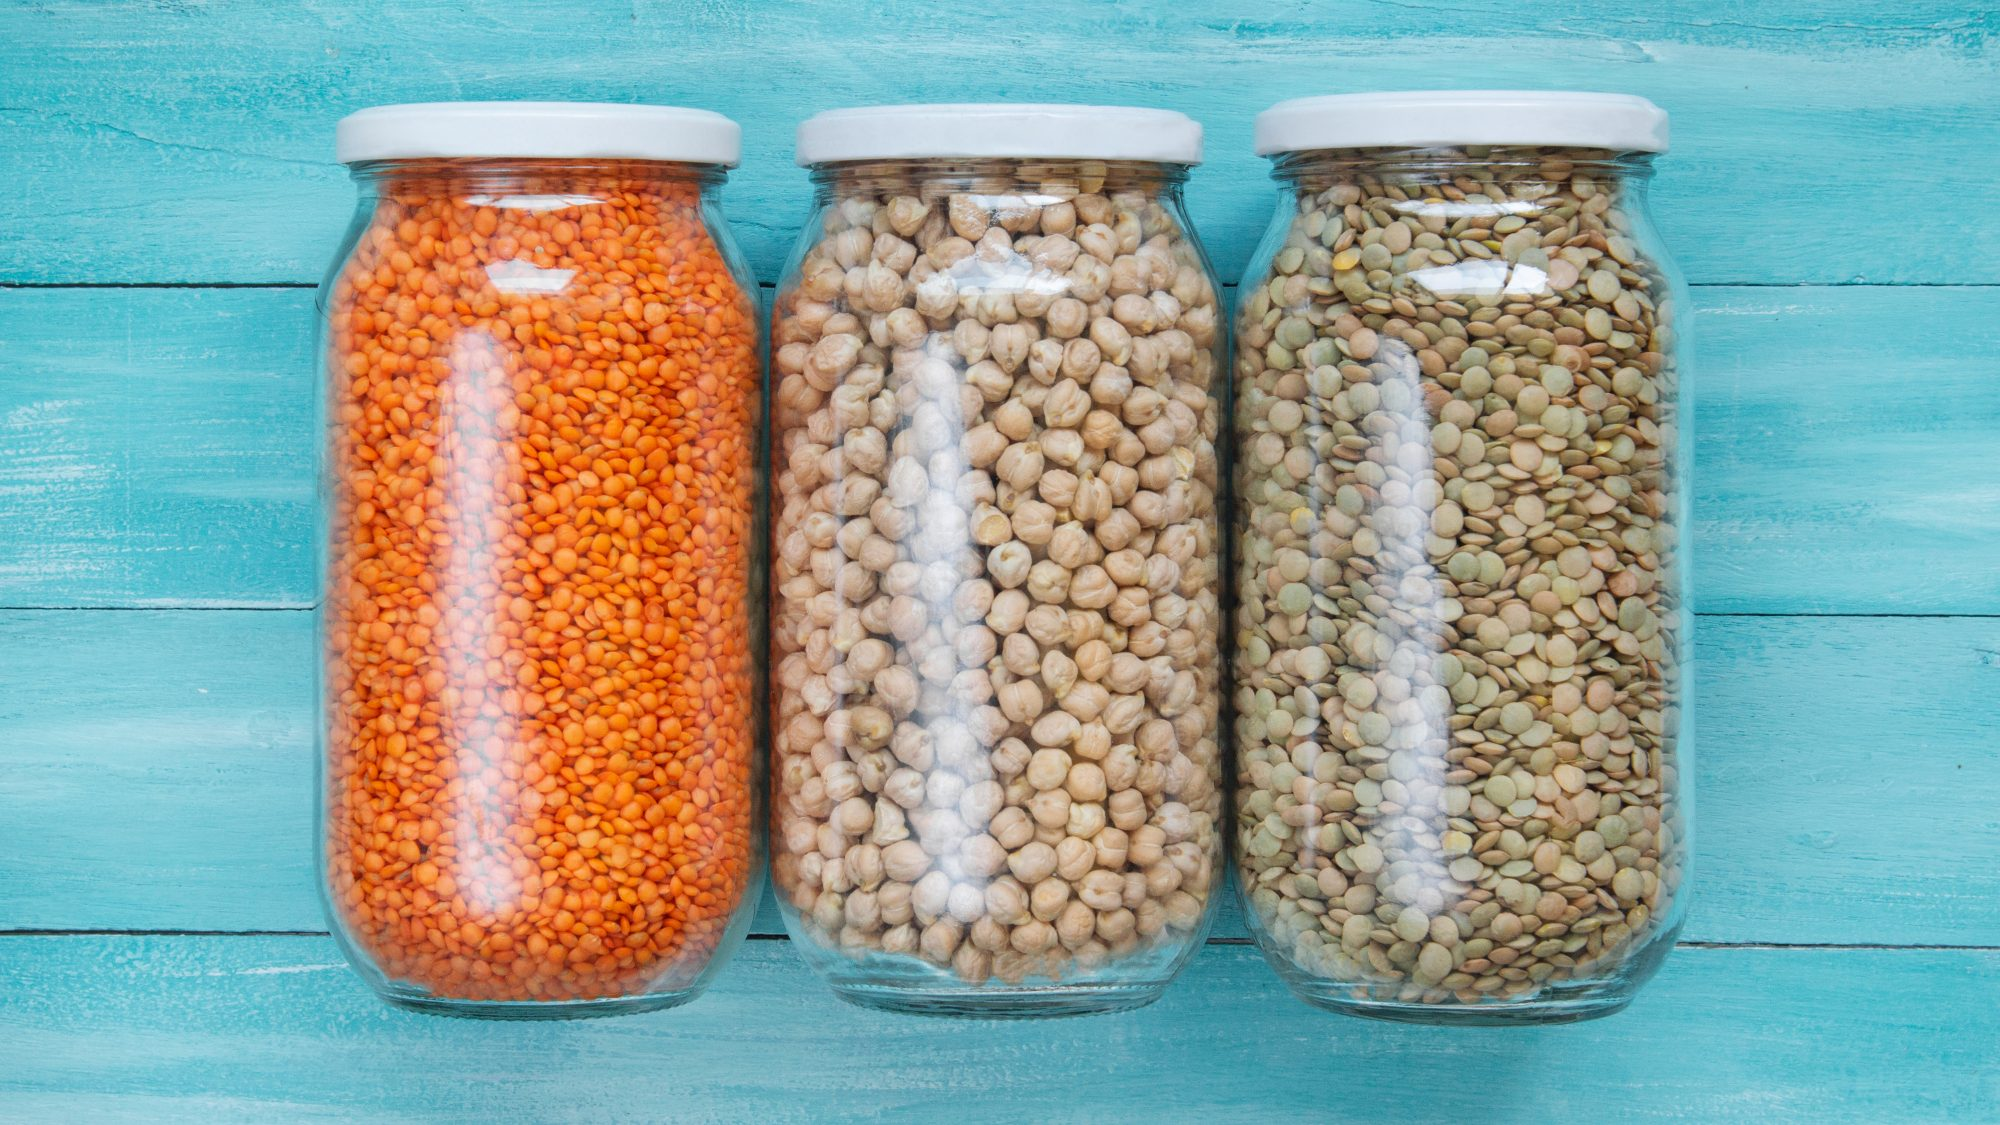 3 shelf-stable foods inside jars